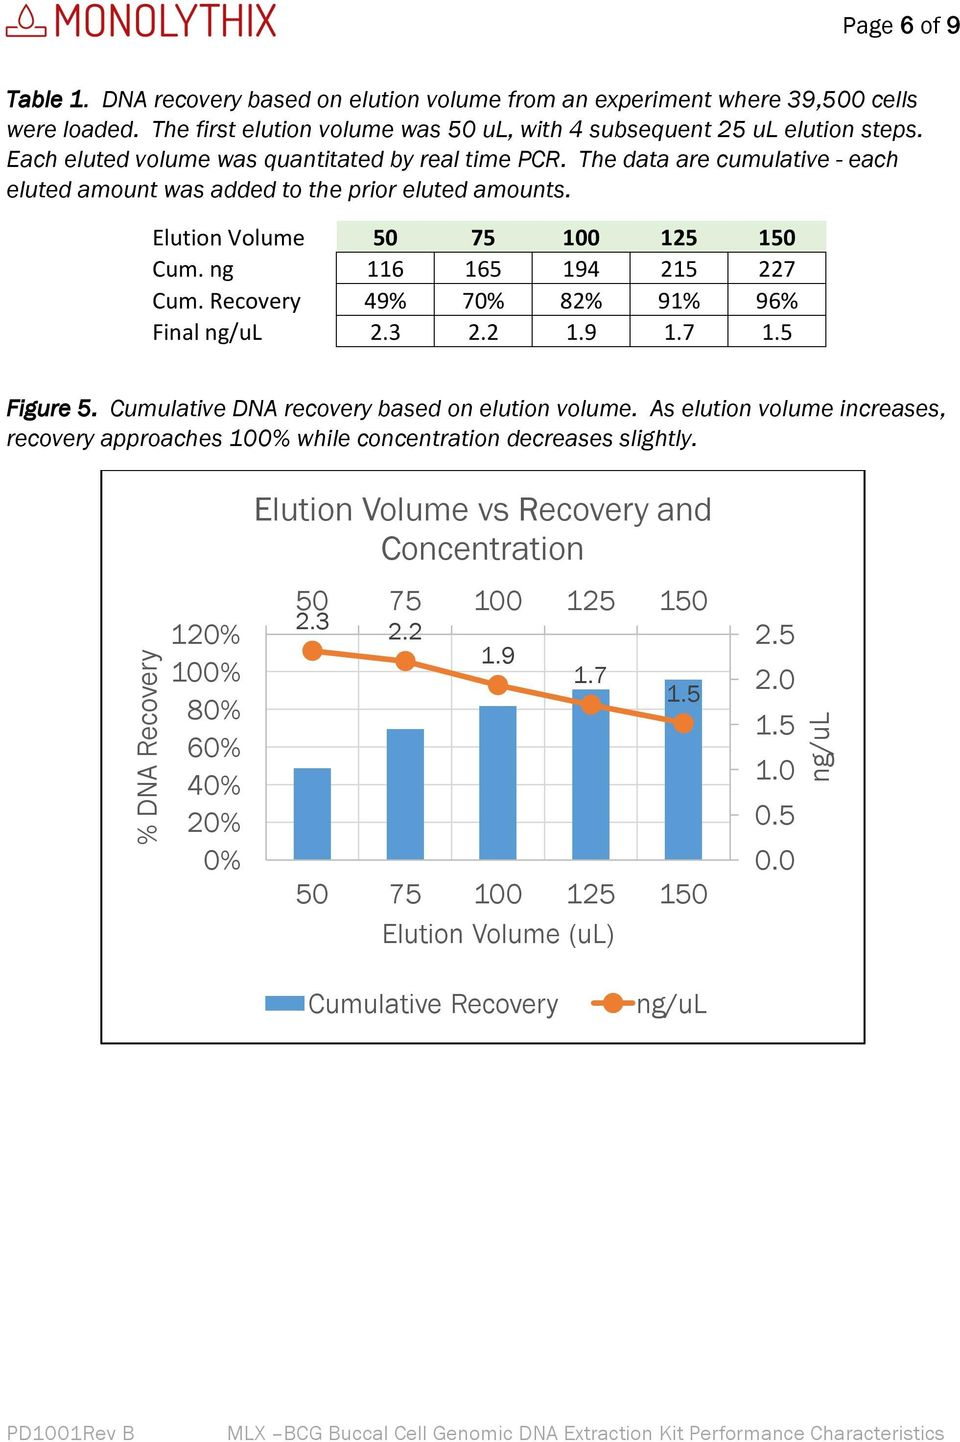 ng 116 165 194 215 227 Cum. Recovery 49% 70% 82% 91% 96% Final ng/ul 2.3 2.2 1.9 1.7 1.5 Figure 5. Cumulative DNA recovery based on elution volume.